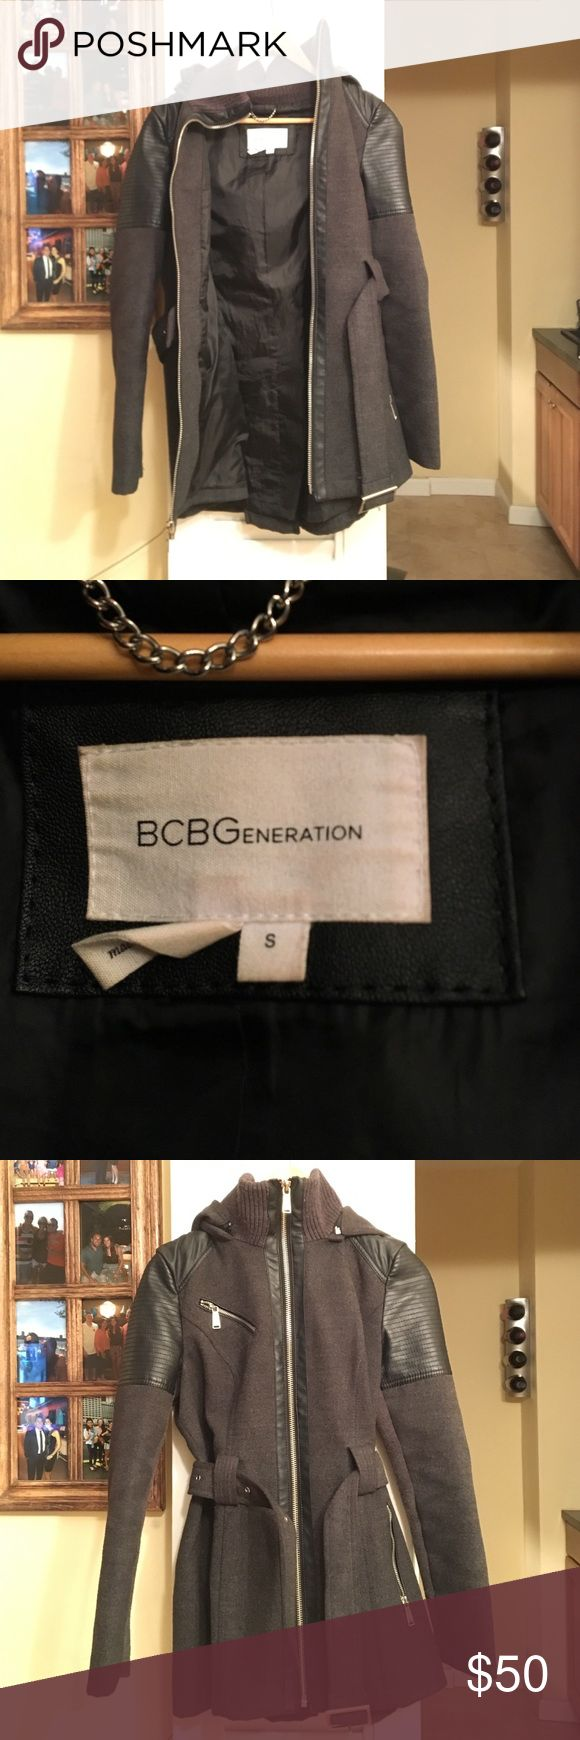 BCBGeneration jacket!! Grey zip up jacket with leather accents on the shoulders and sleeves. Super cute great for fall/winter weather. BCBGeneration Jackets & Coats Pea Coats